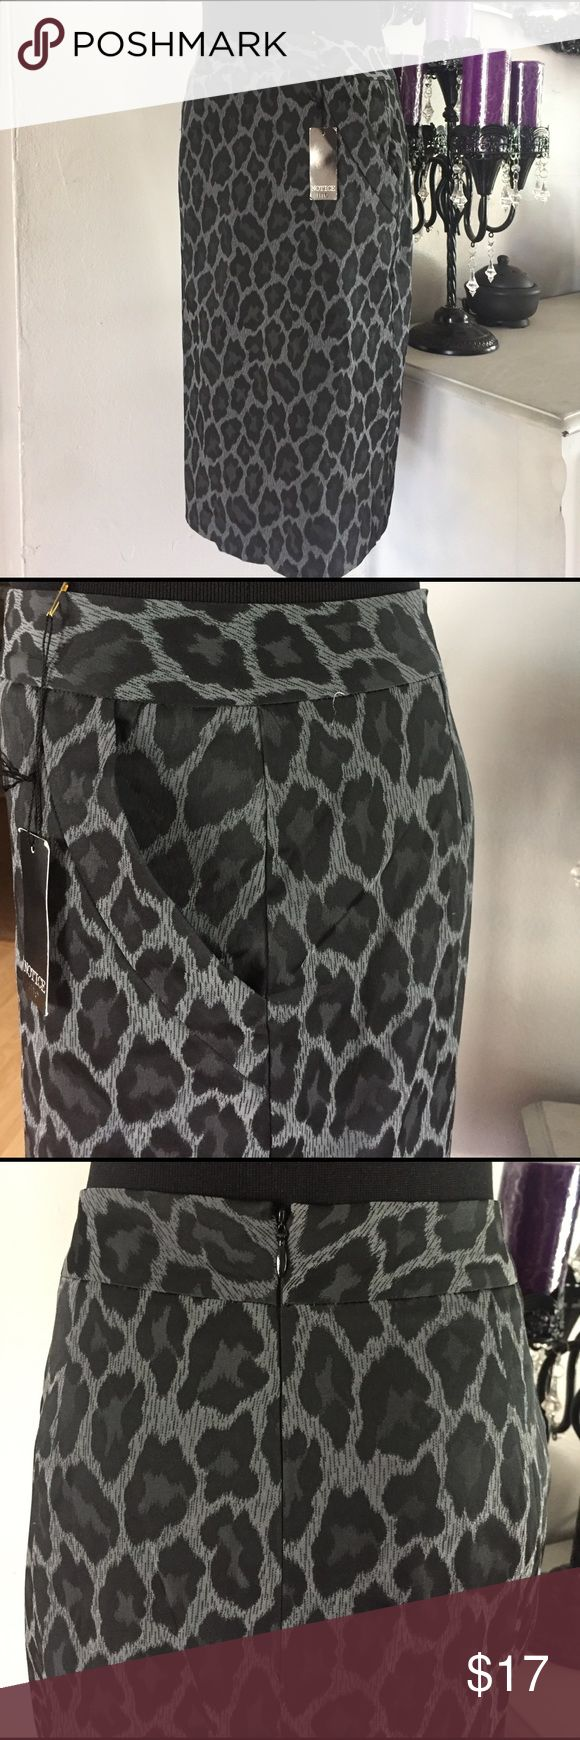 Gray Leopard Pencil Skirt Brand new | Grey | Leopard | Pencil Skirt.... you don't want t let this one go! IT HAS POCKETS!!! Perfect for any occasion!              ⚡️fast shipper.                                                                                         % bundle discount Skirts Pencil